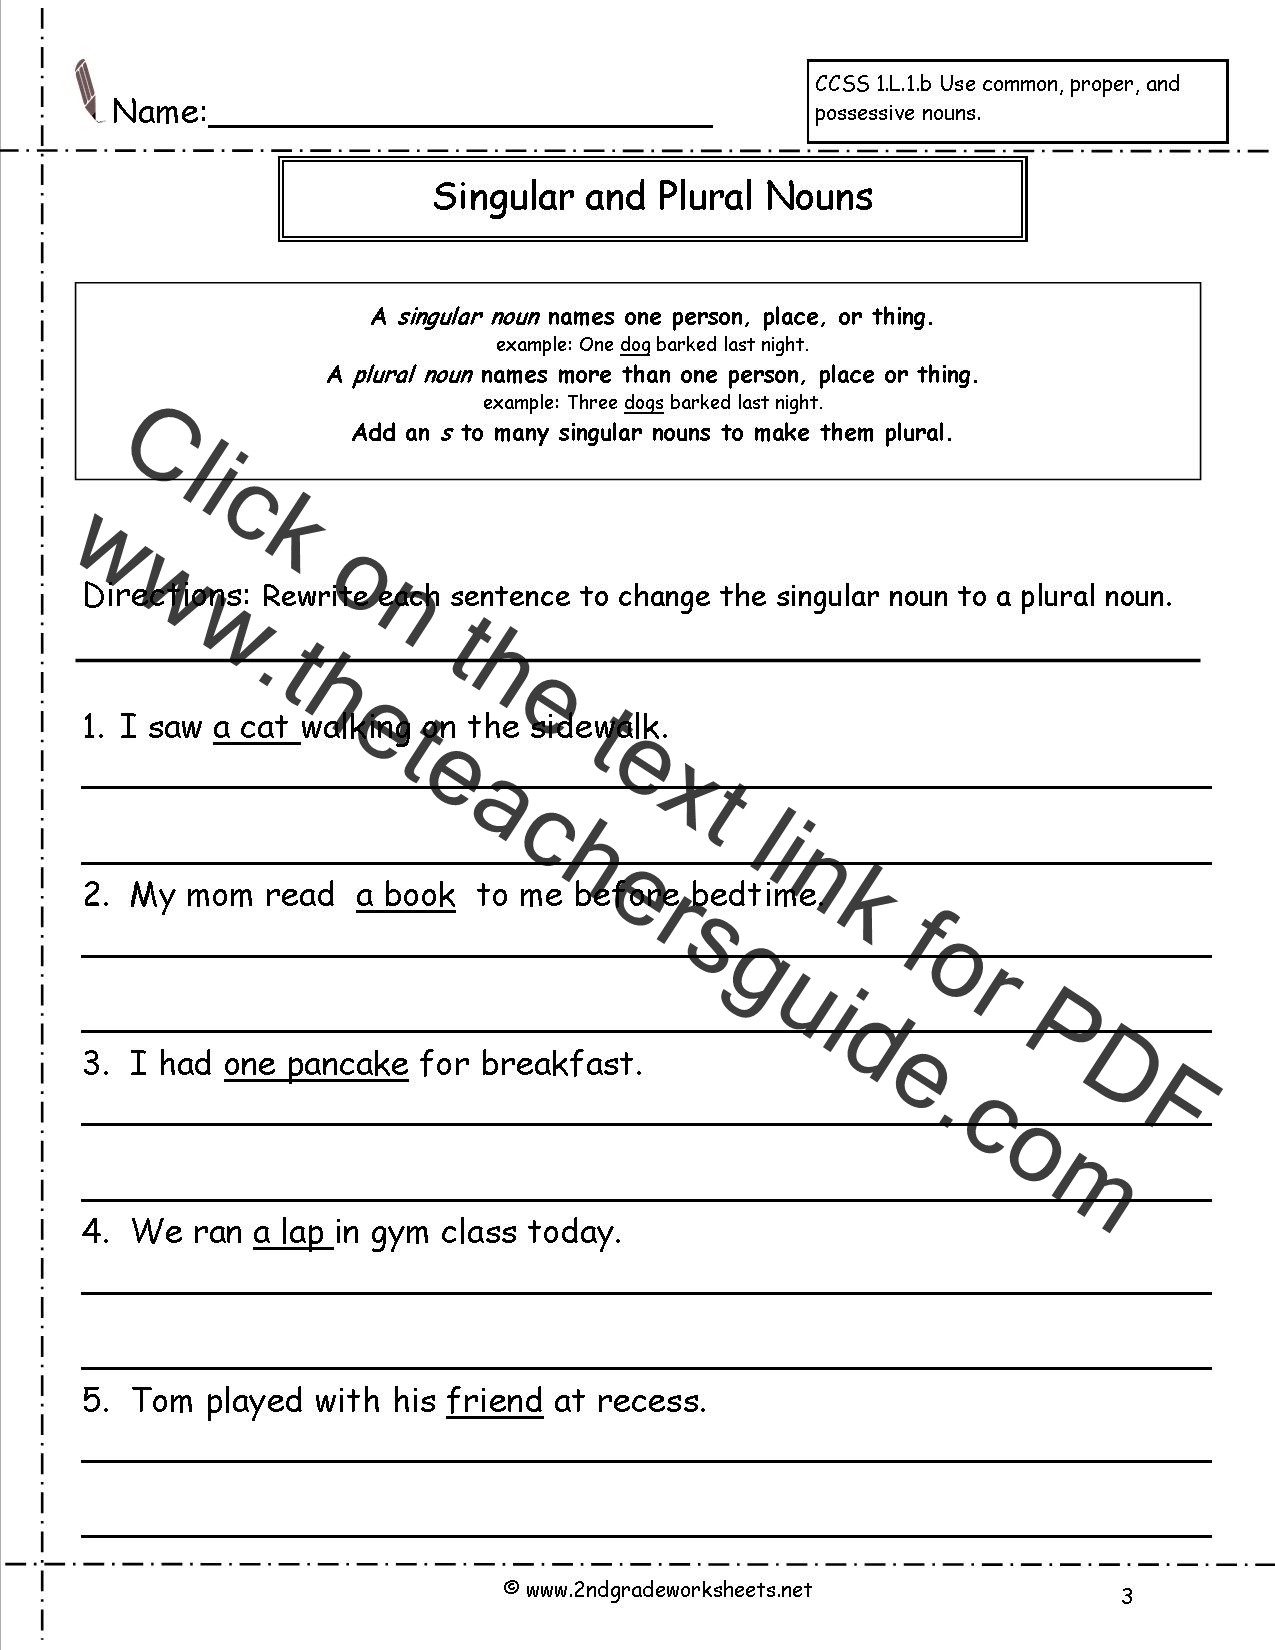 hight resolution of Singular and Plural Nouns Worksheets